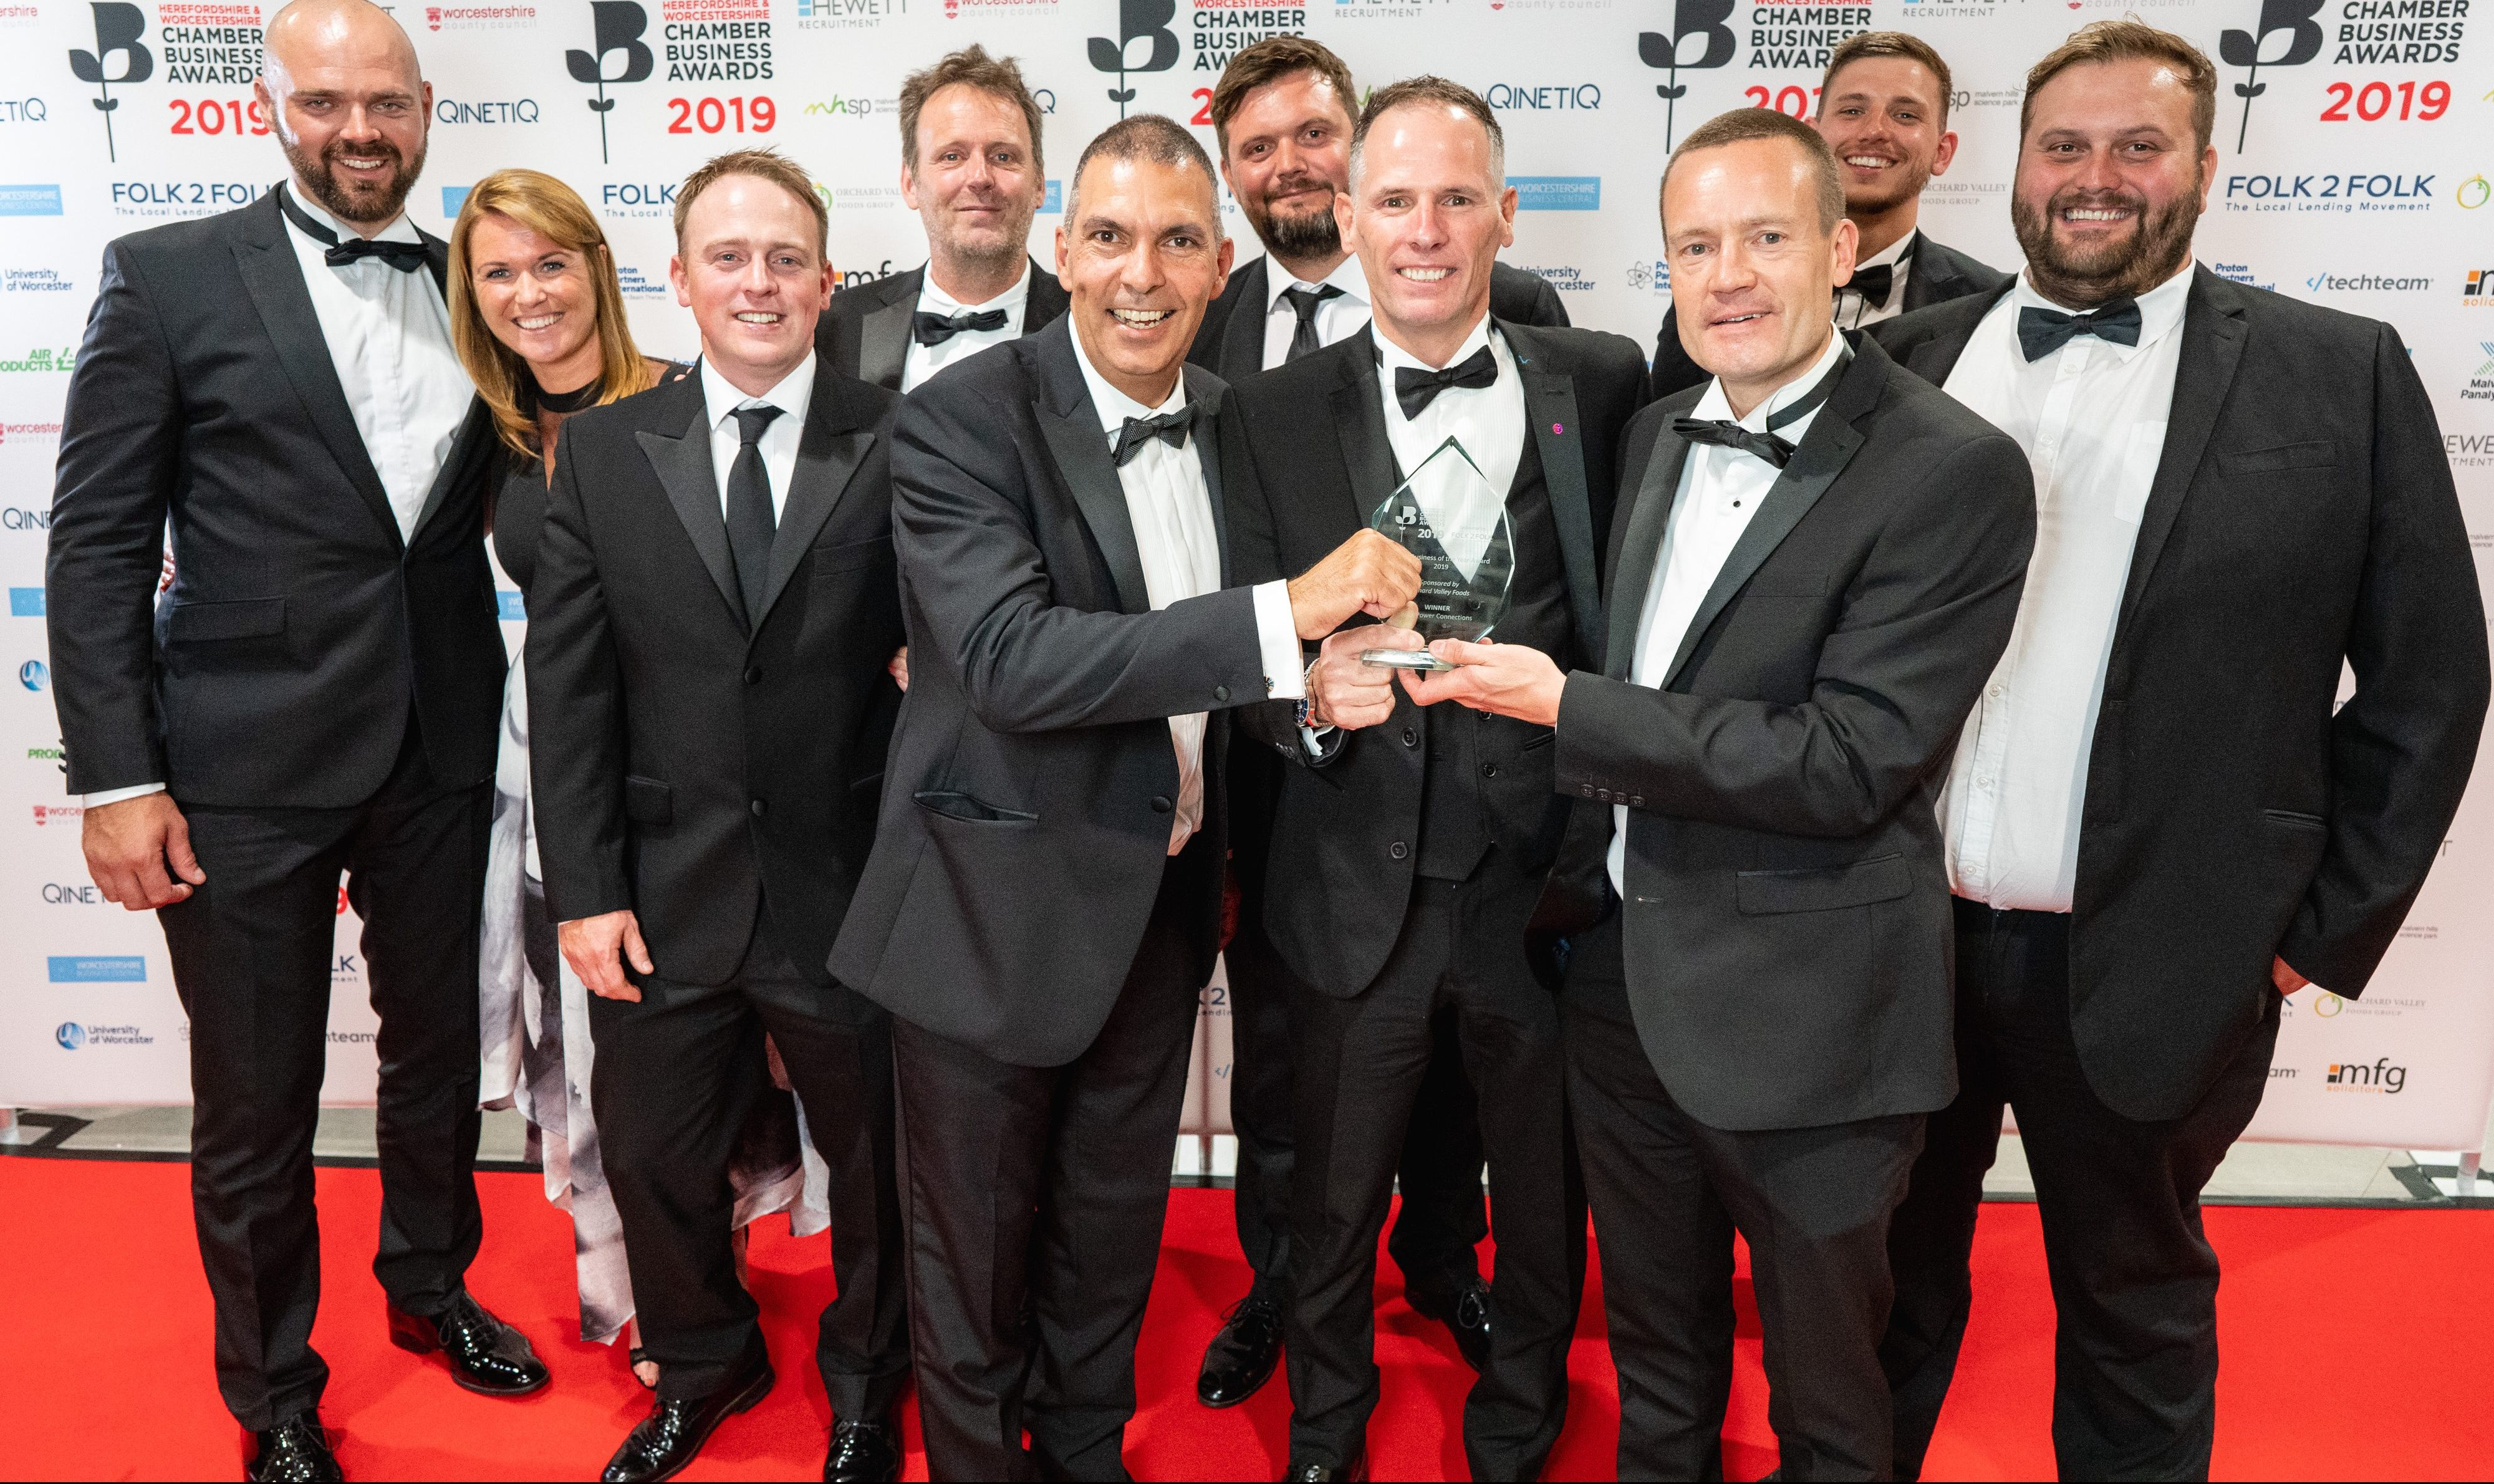 Rock Power Connections celebrating an awards win